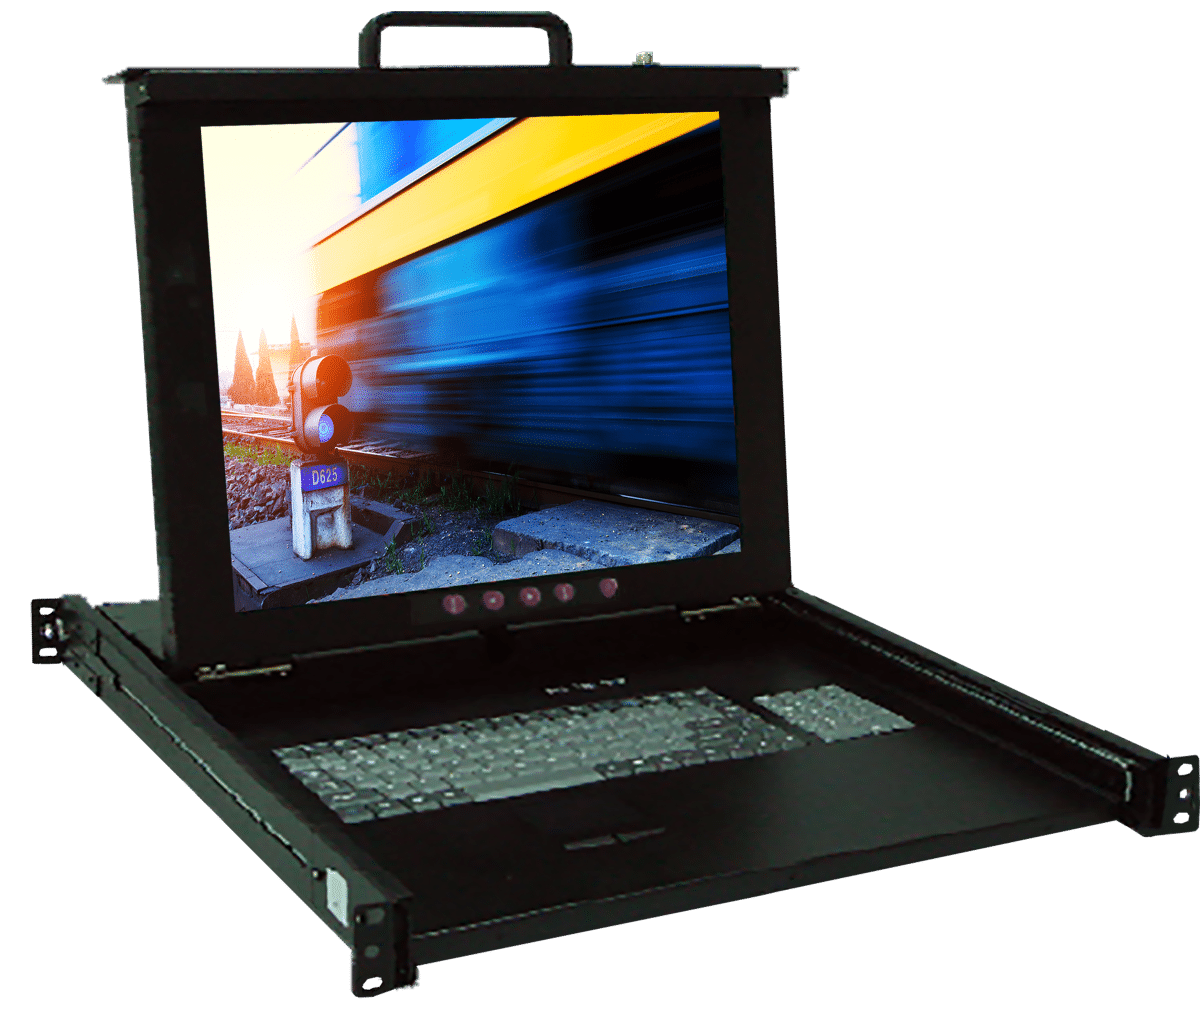 KSR119 Industrial Display